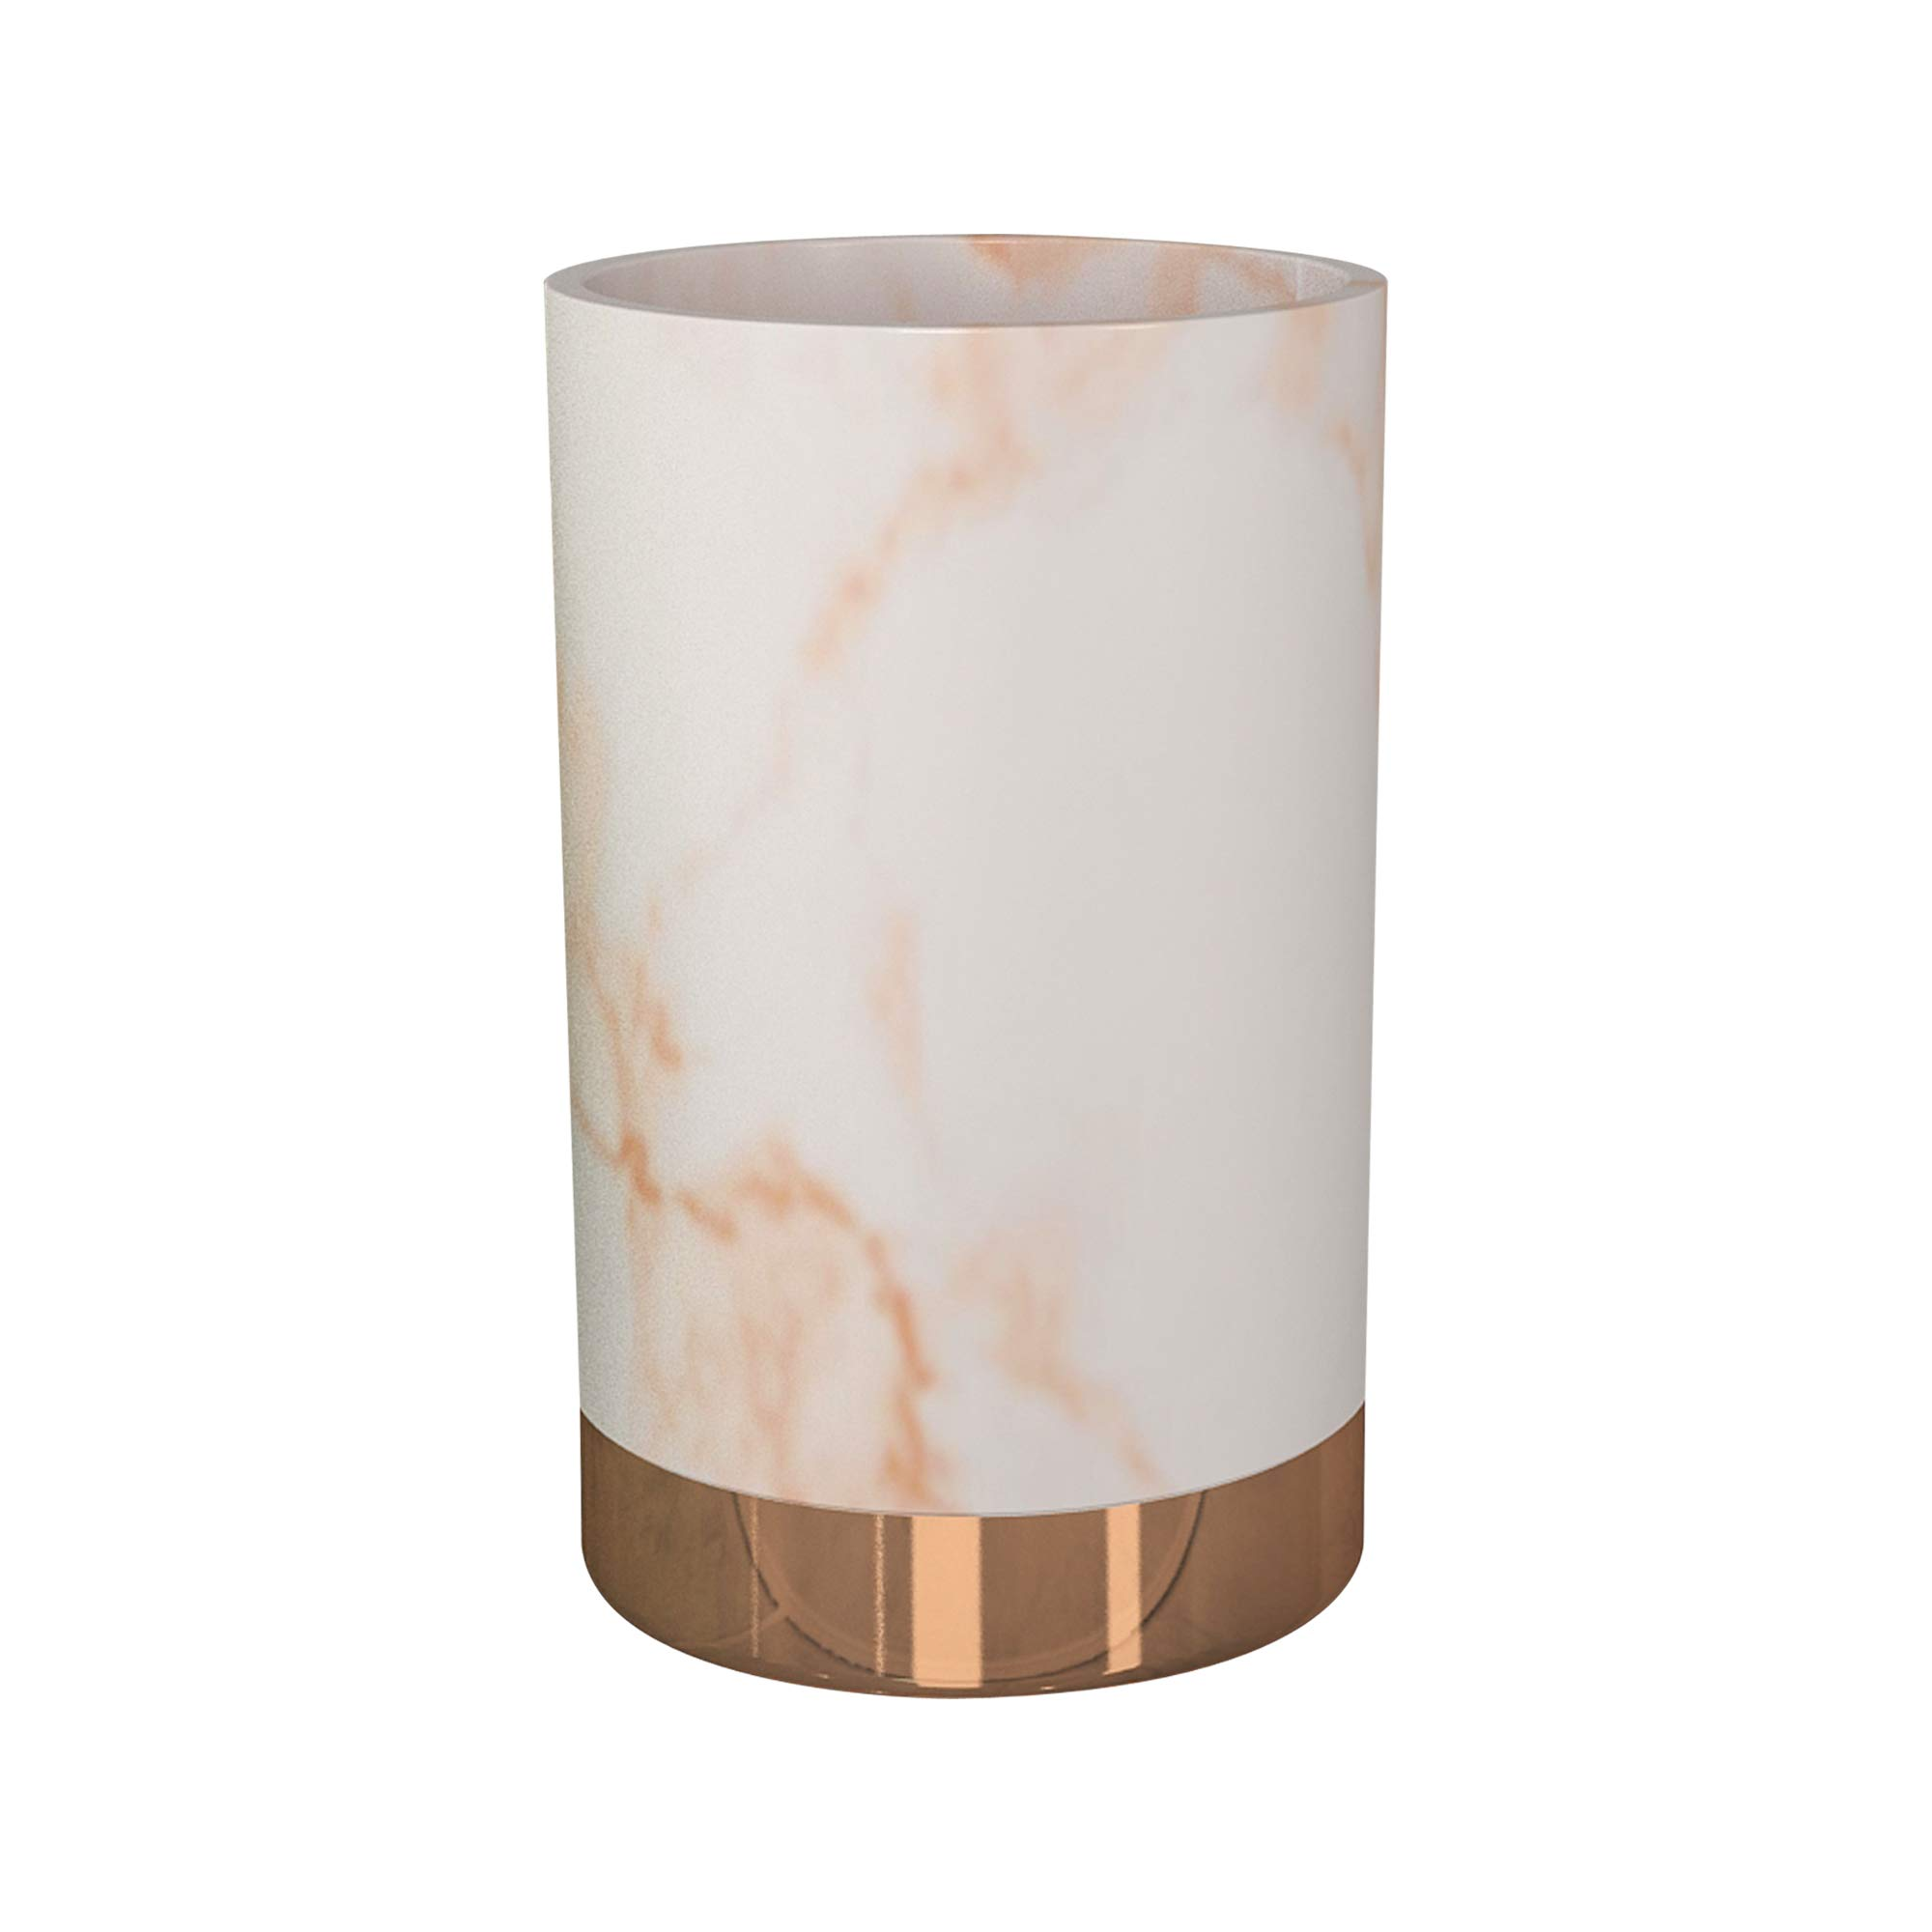 nu-steel MST5CH Misty Copper Collection Tumbler, Perfect for Home & Bathroom Accessories, Resin and Metal by nu-steel